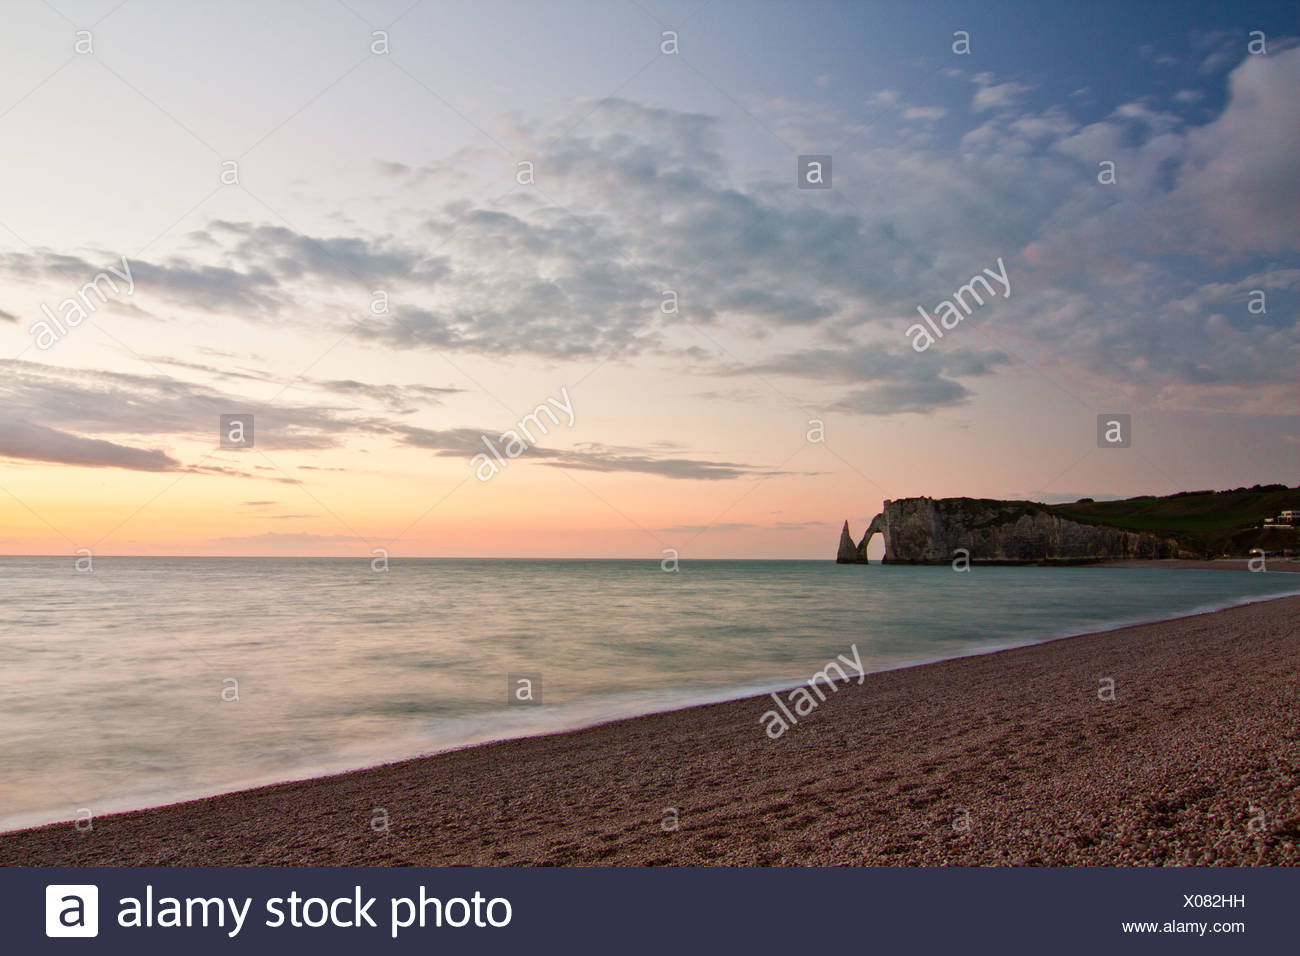 Coast of Etretat (Étretat) and Porte d'Aval - Stock Image